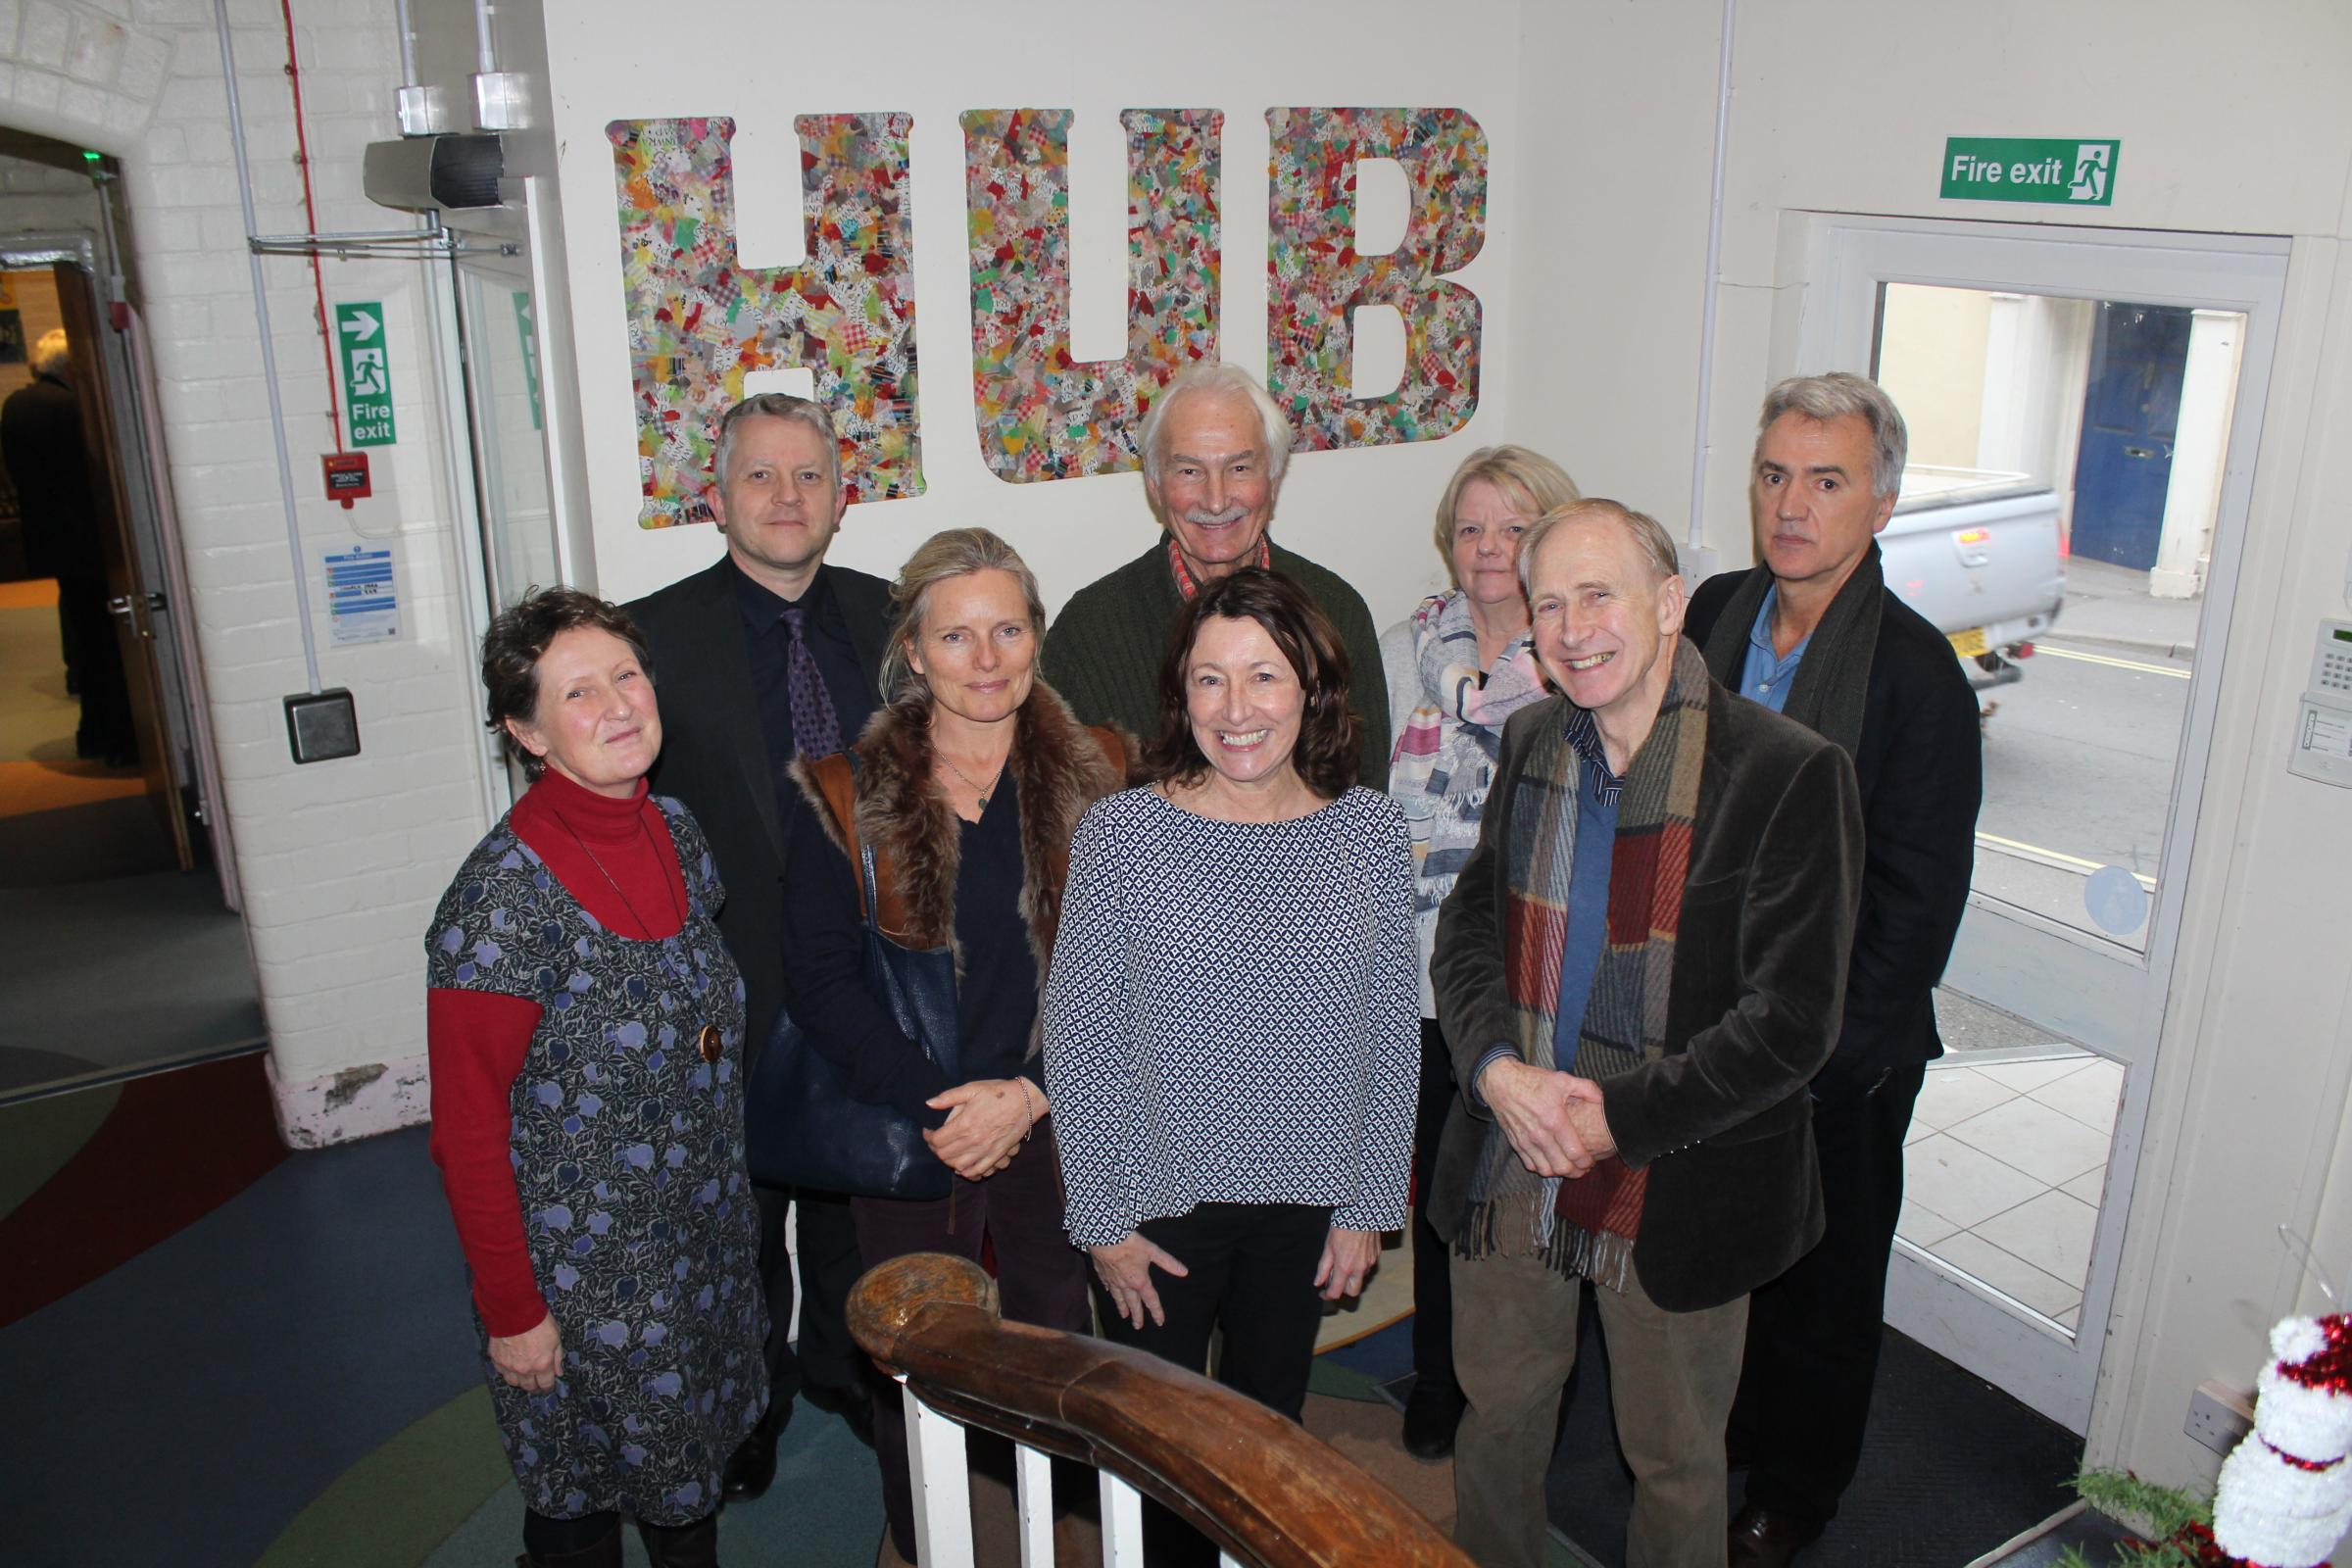 BOOST: The Alexandra Hotel and Restaurant will be sponsoring The Hub in Lyme Regis on a monthly basis